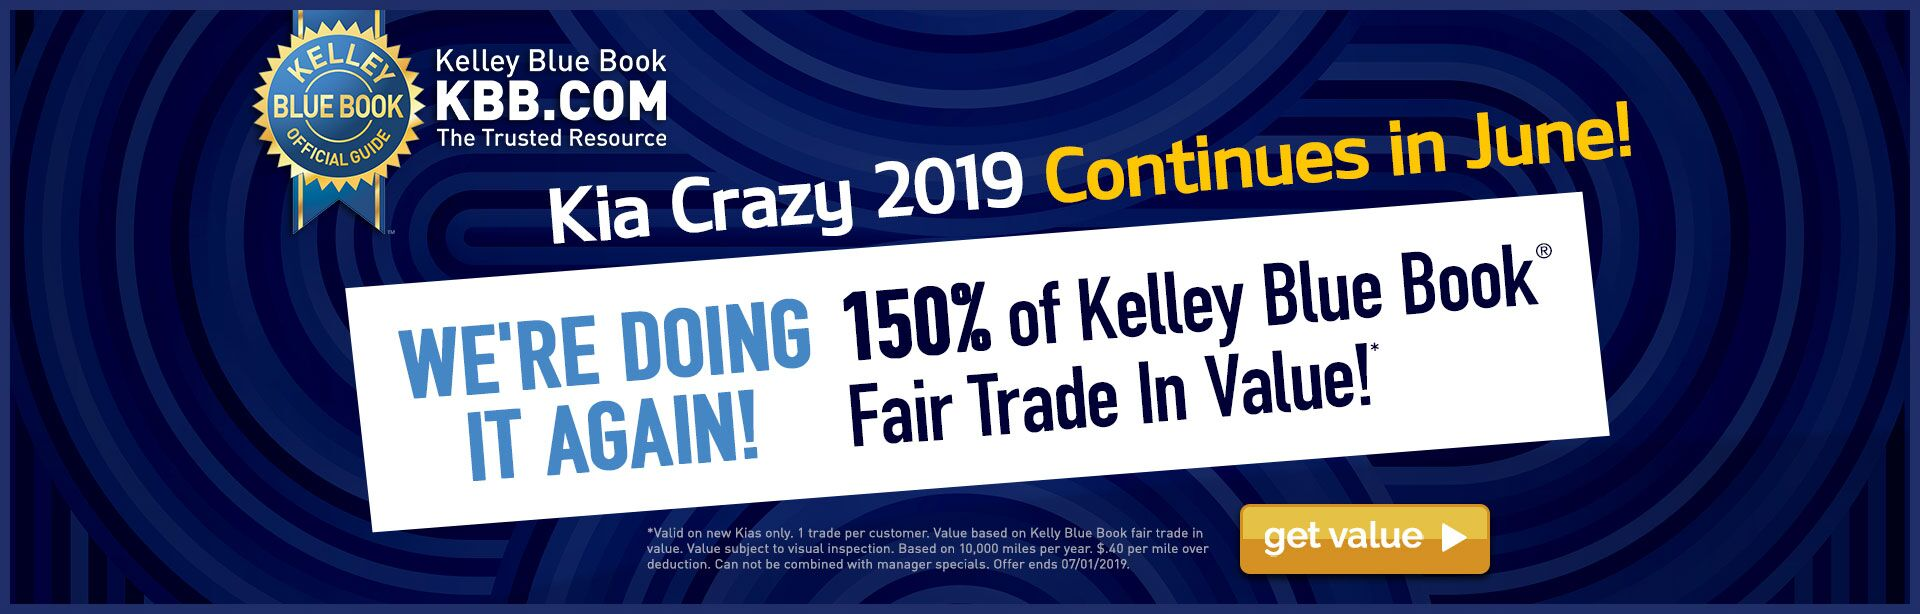 June Kia Crazy 2019